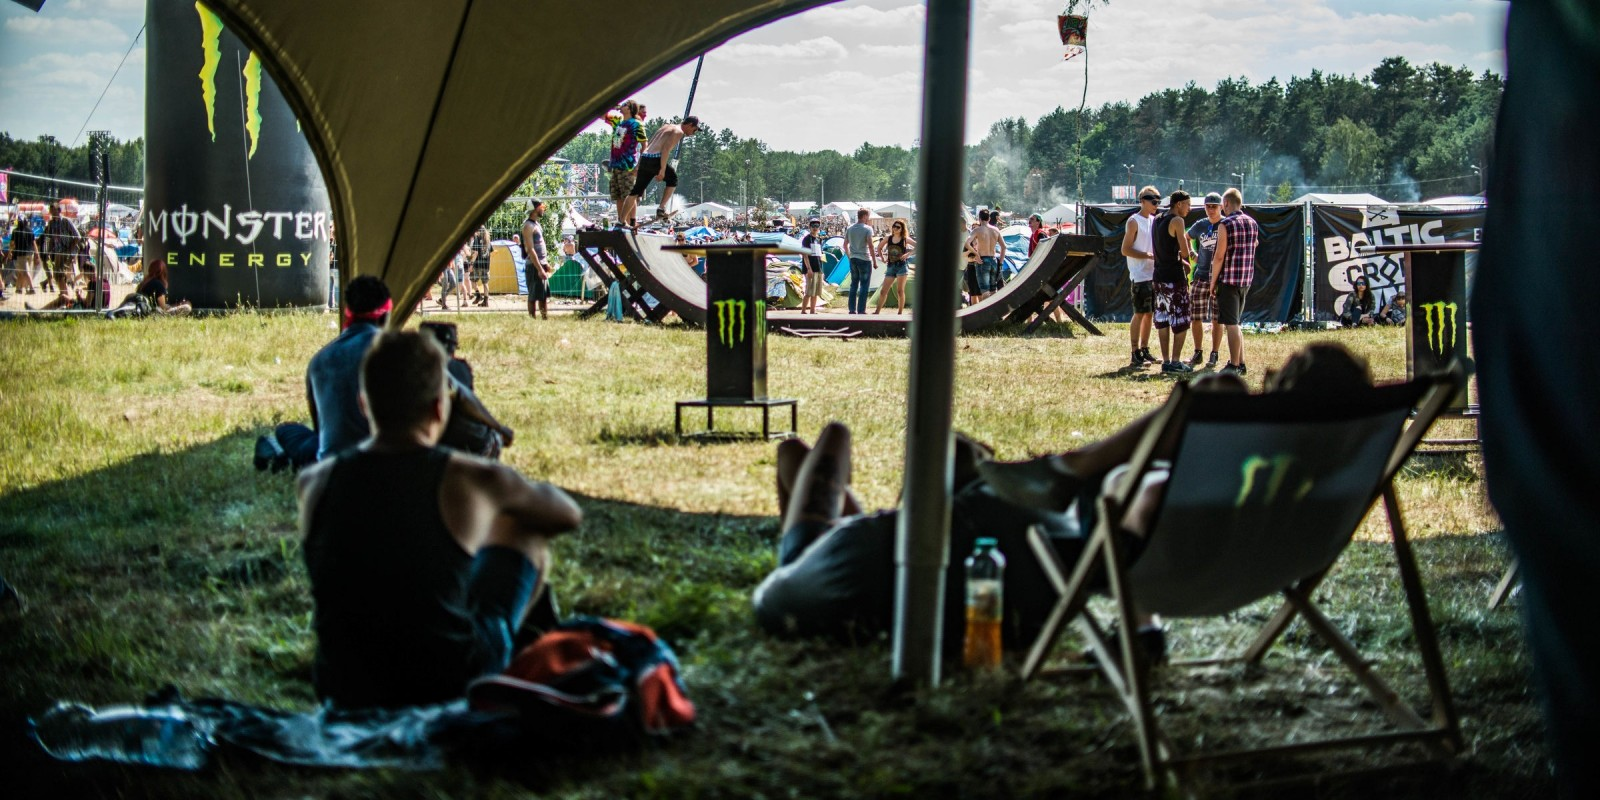 2016 Woodstock Festival, Poland - Monster Energy zone activations - chillout under double wigwam